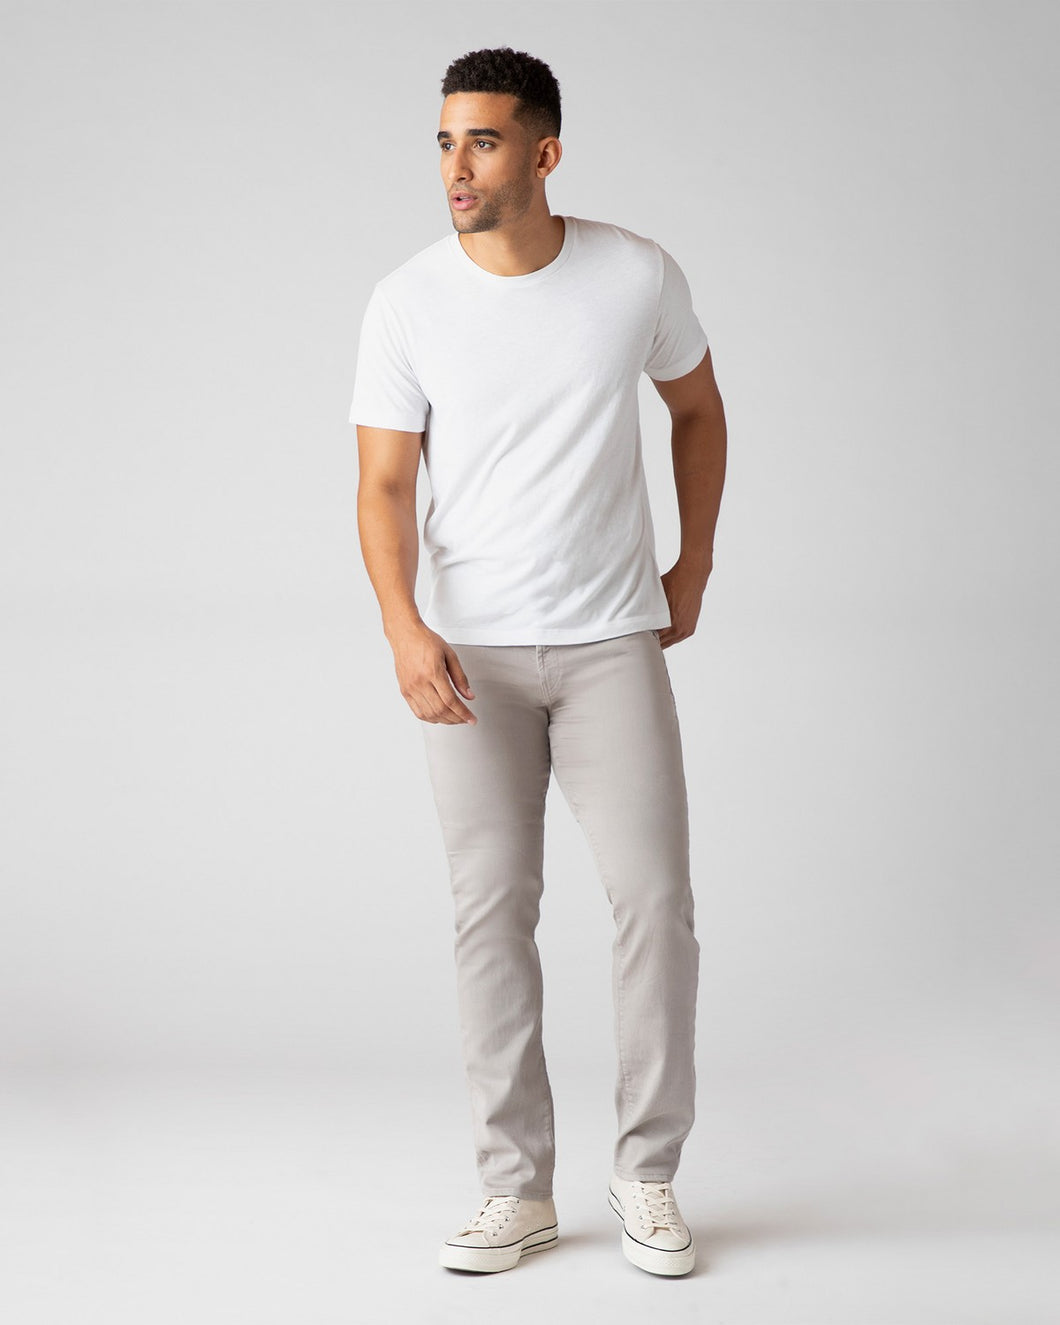 JBrand- Kane straight fit twill jeans